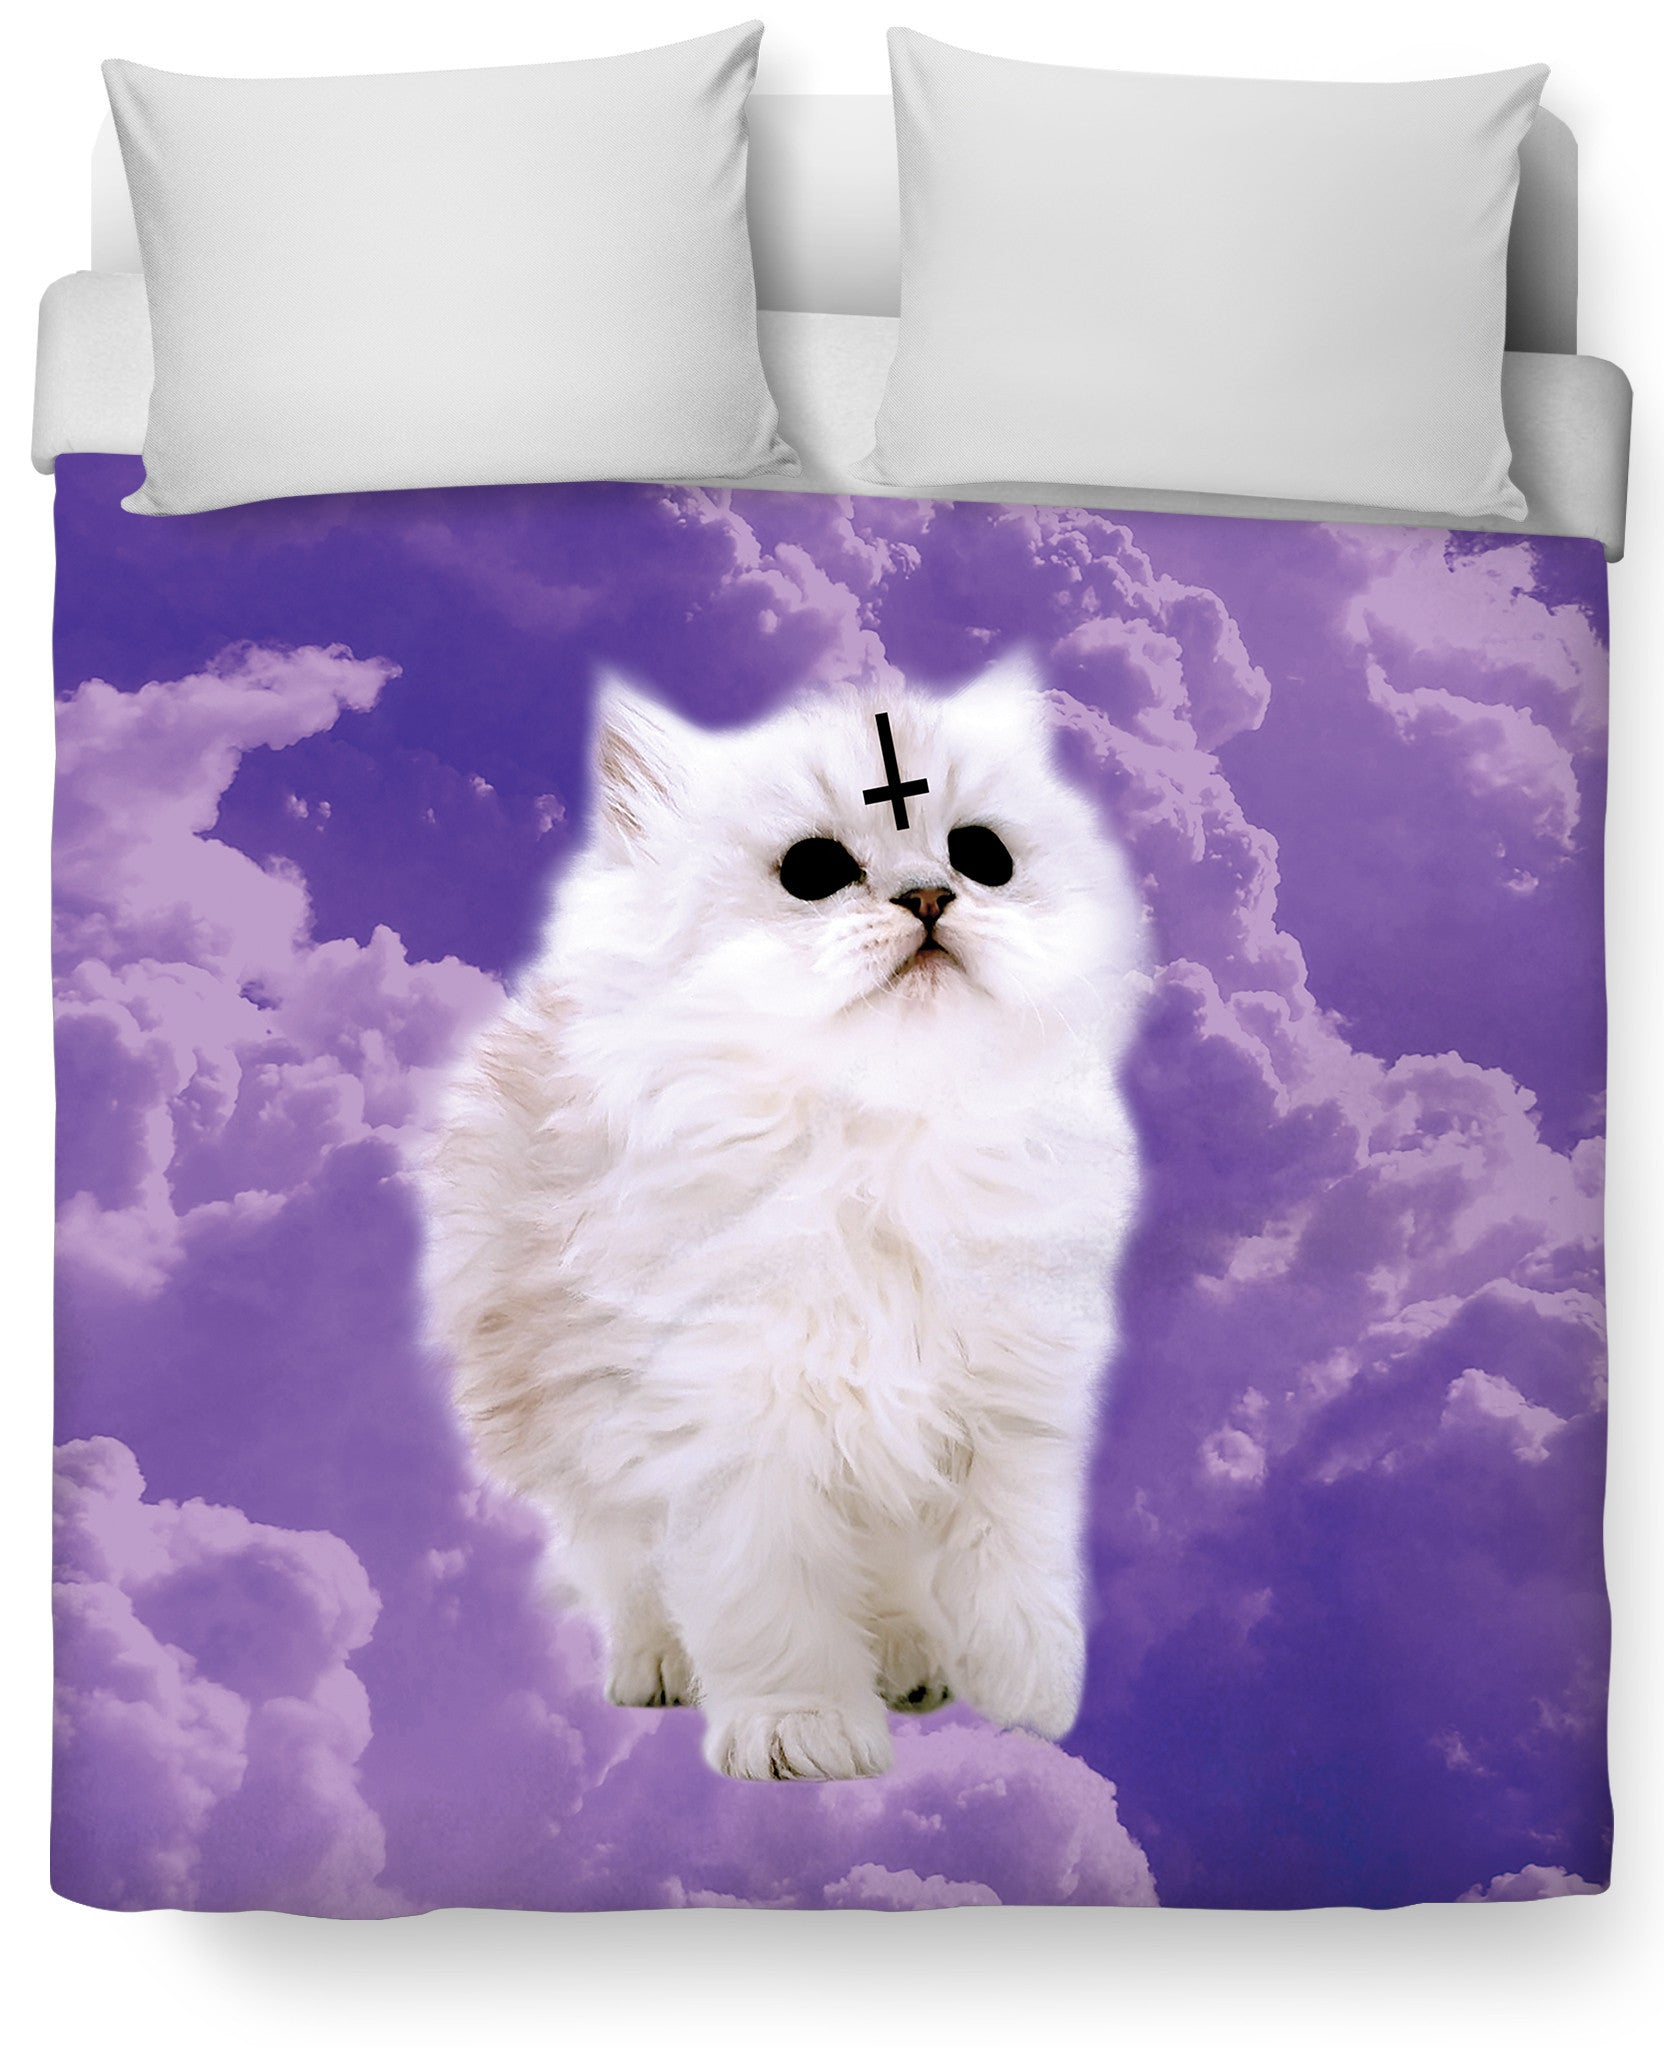 Satan Cat Duvet Cover